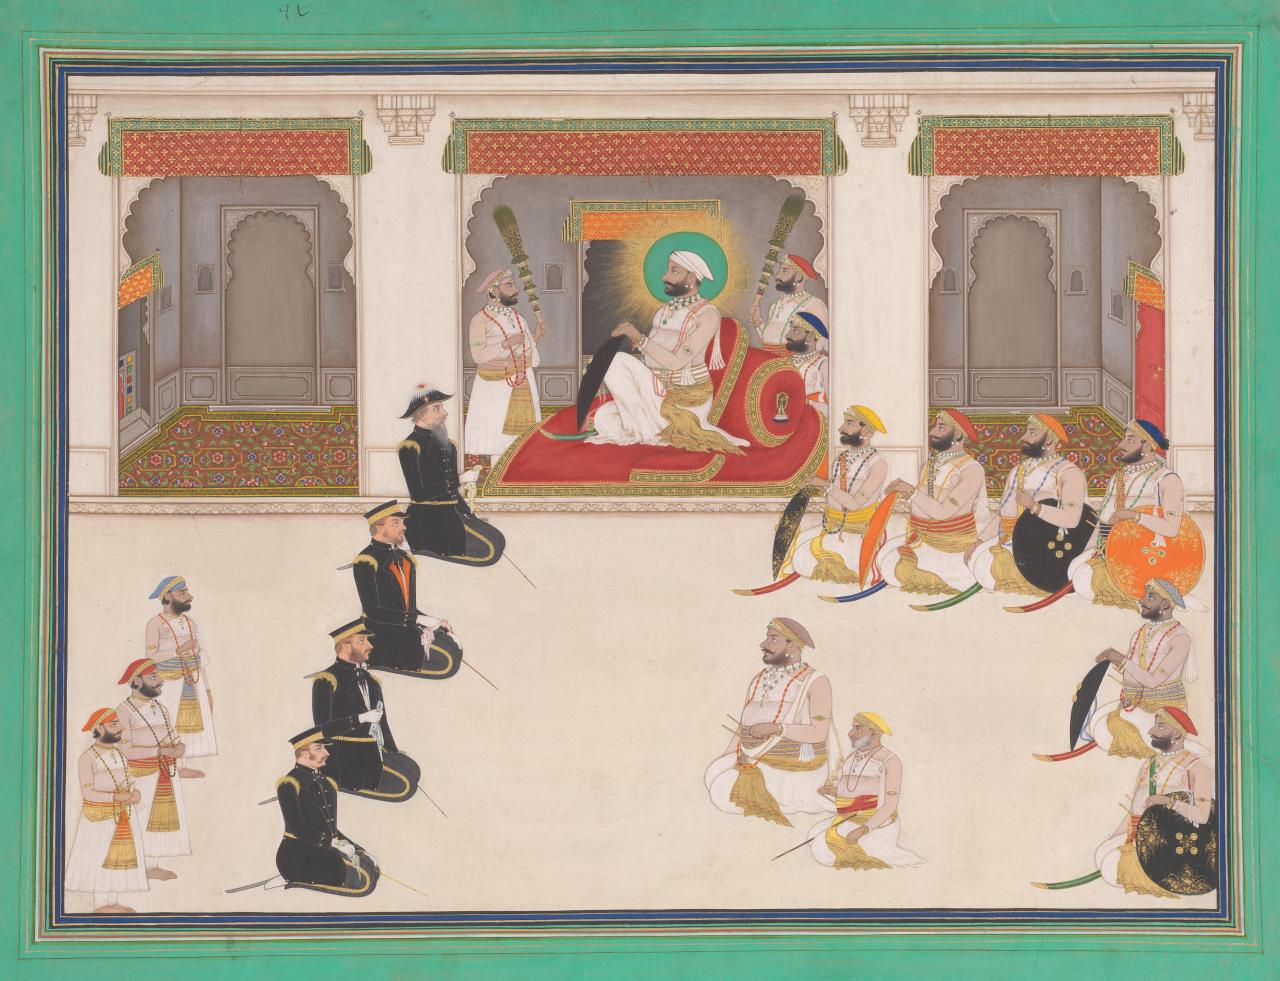 TARA Maharana Swarup Singh receiving Sir Henry Lawrence in durbar 1855